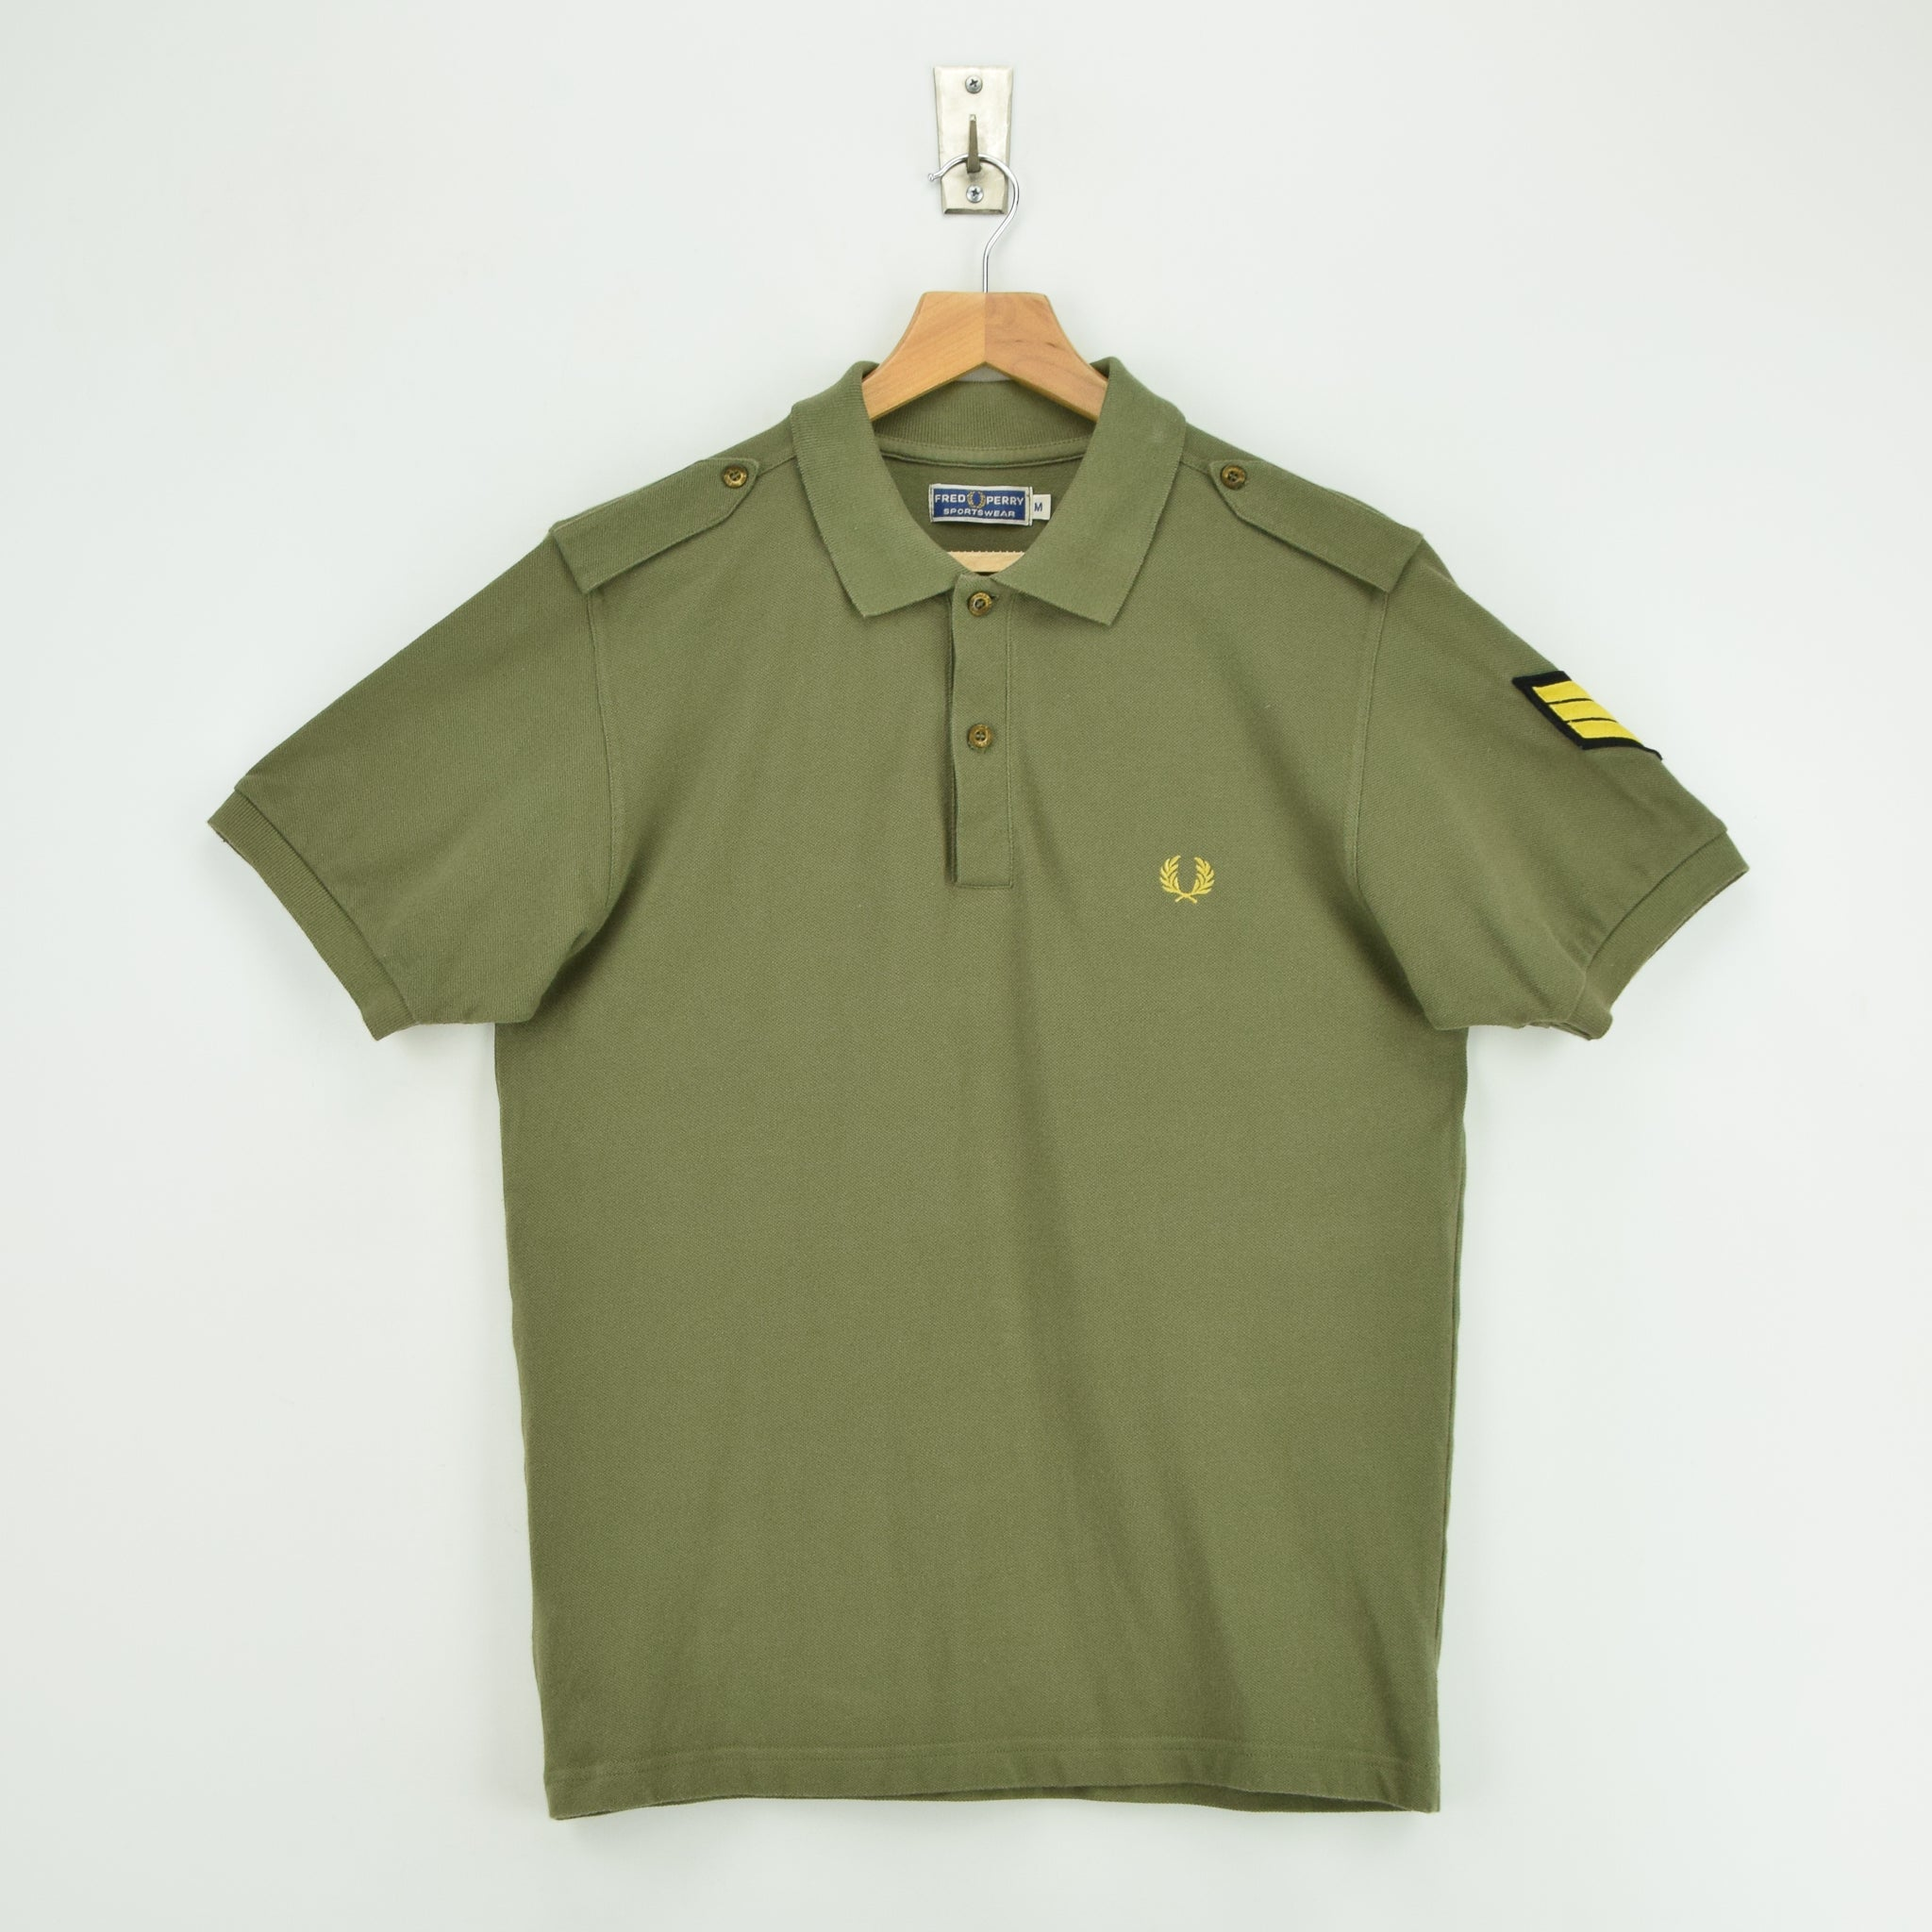 Vintage Fred Perry Green Short Sleeved Military Style Polo Shirt M front